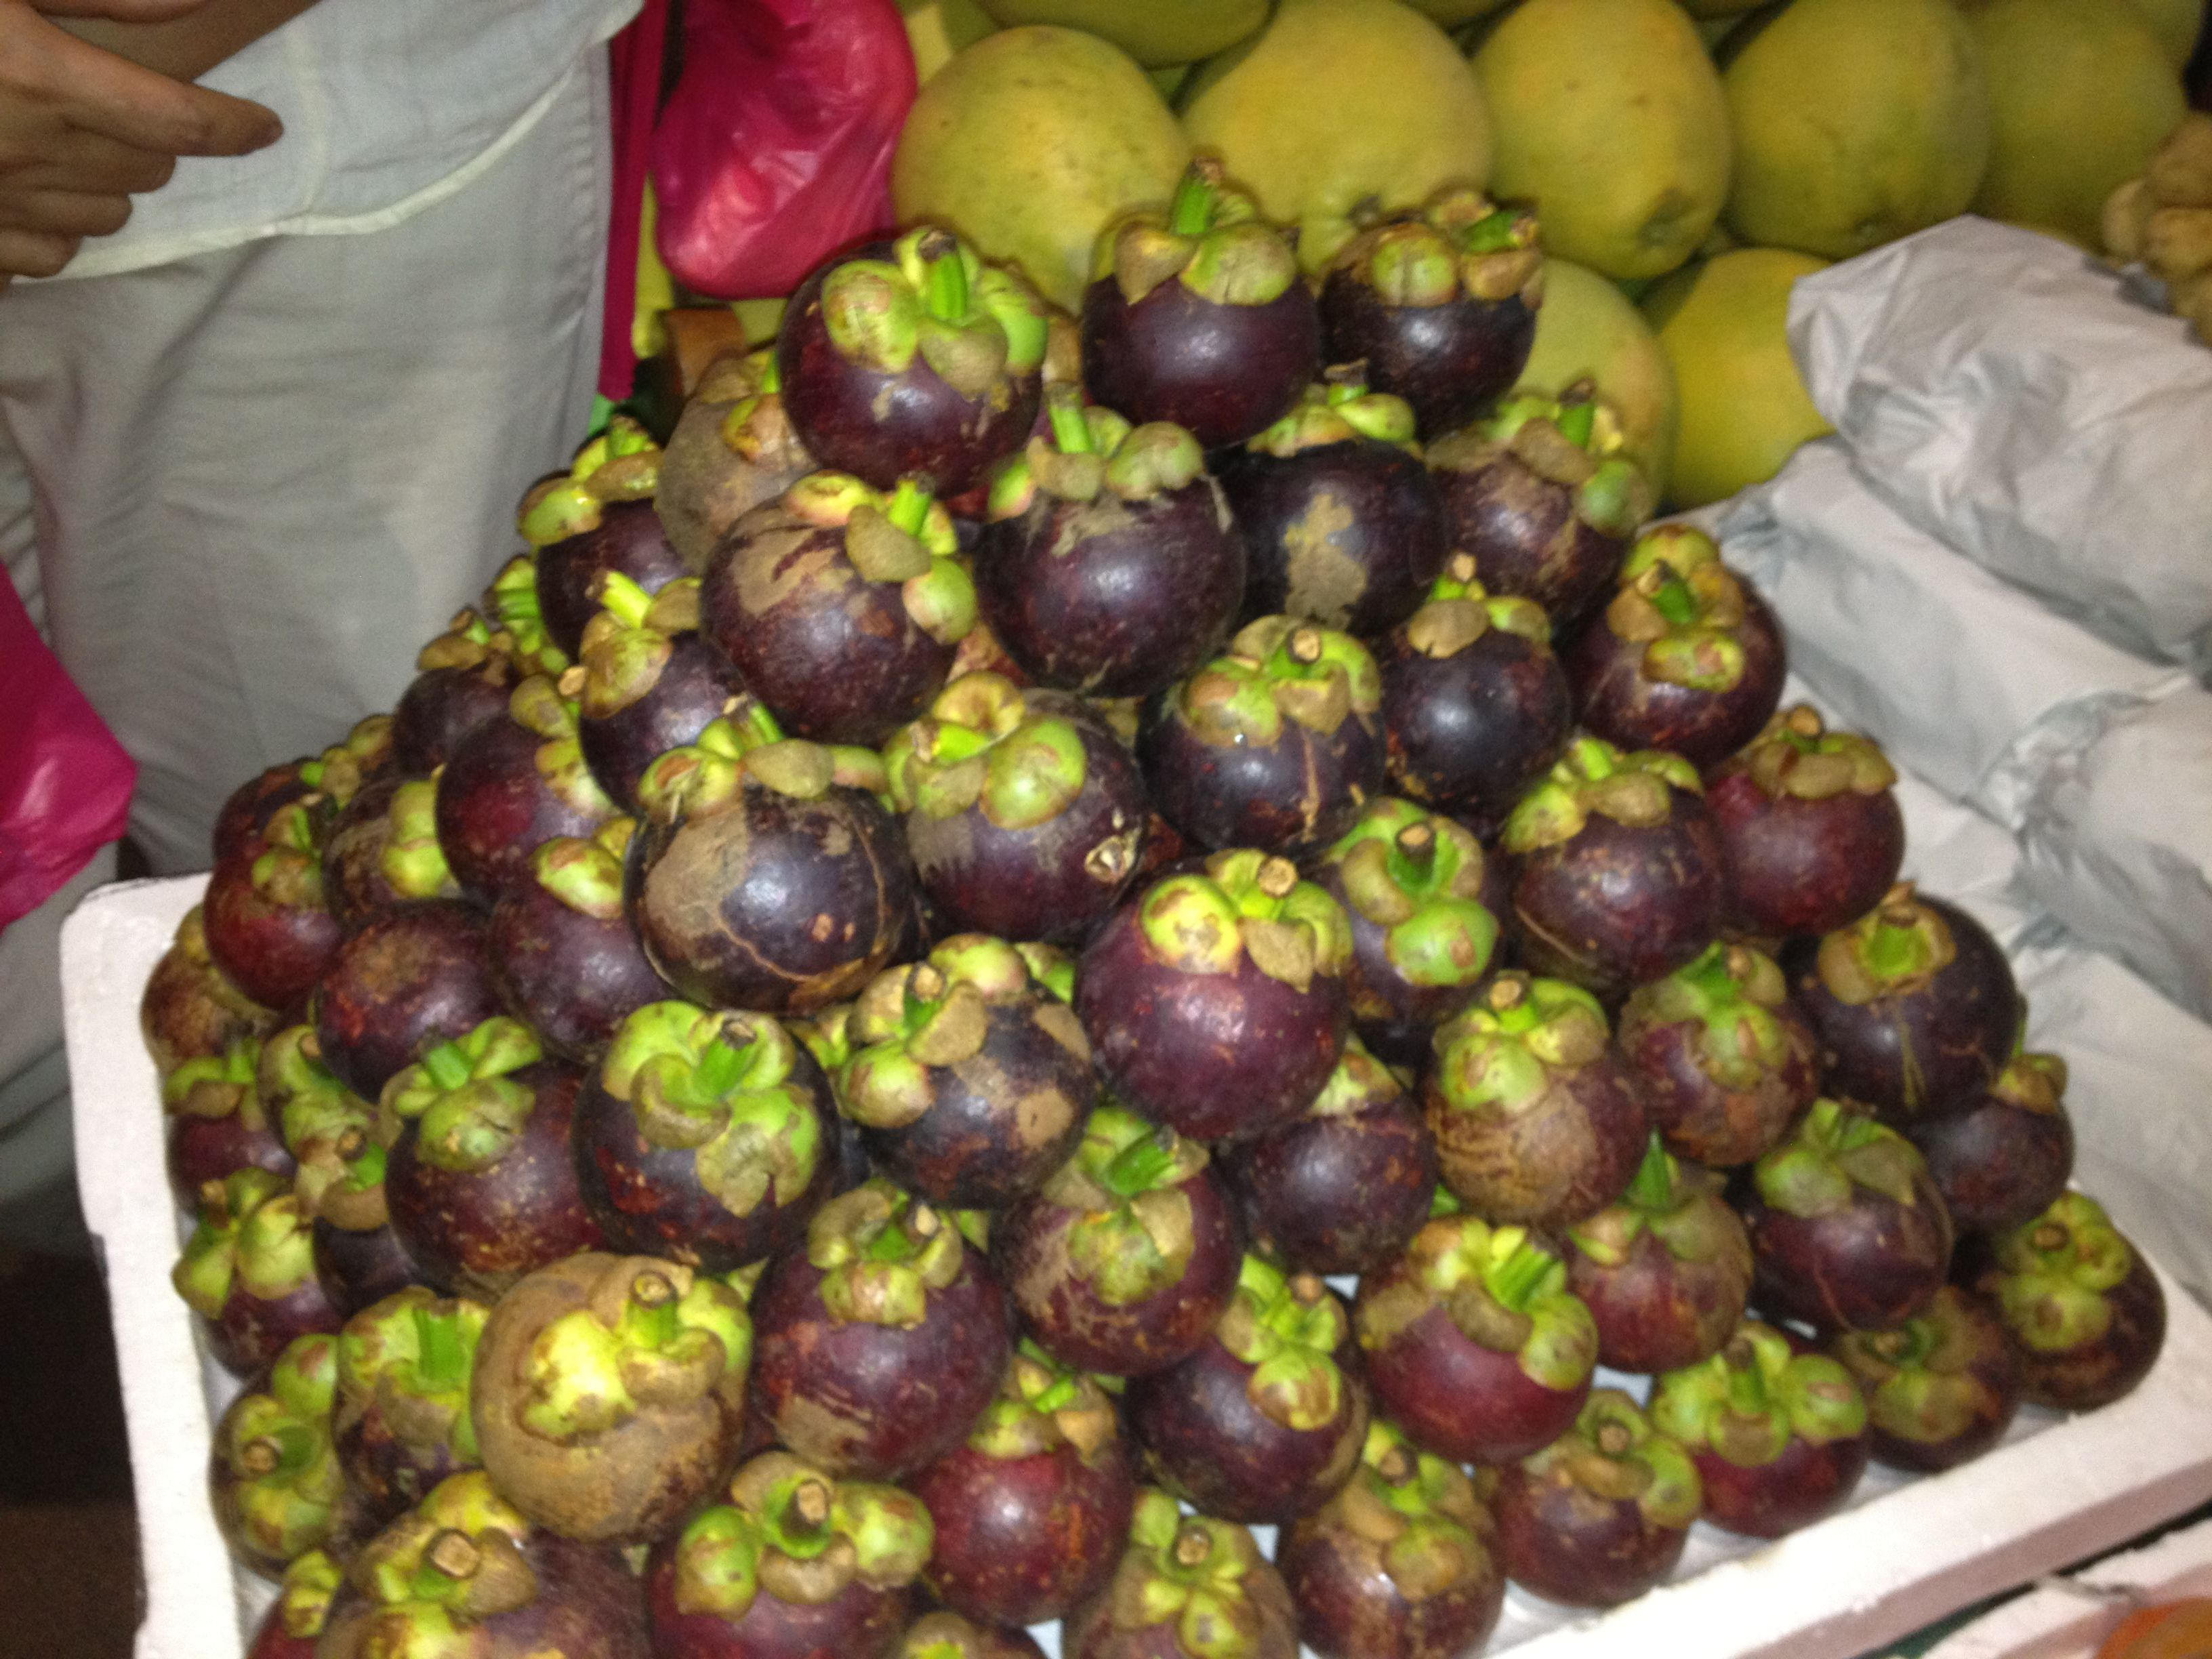 Tropical Fruit From Philippines